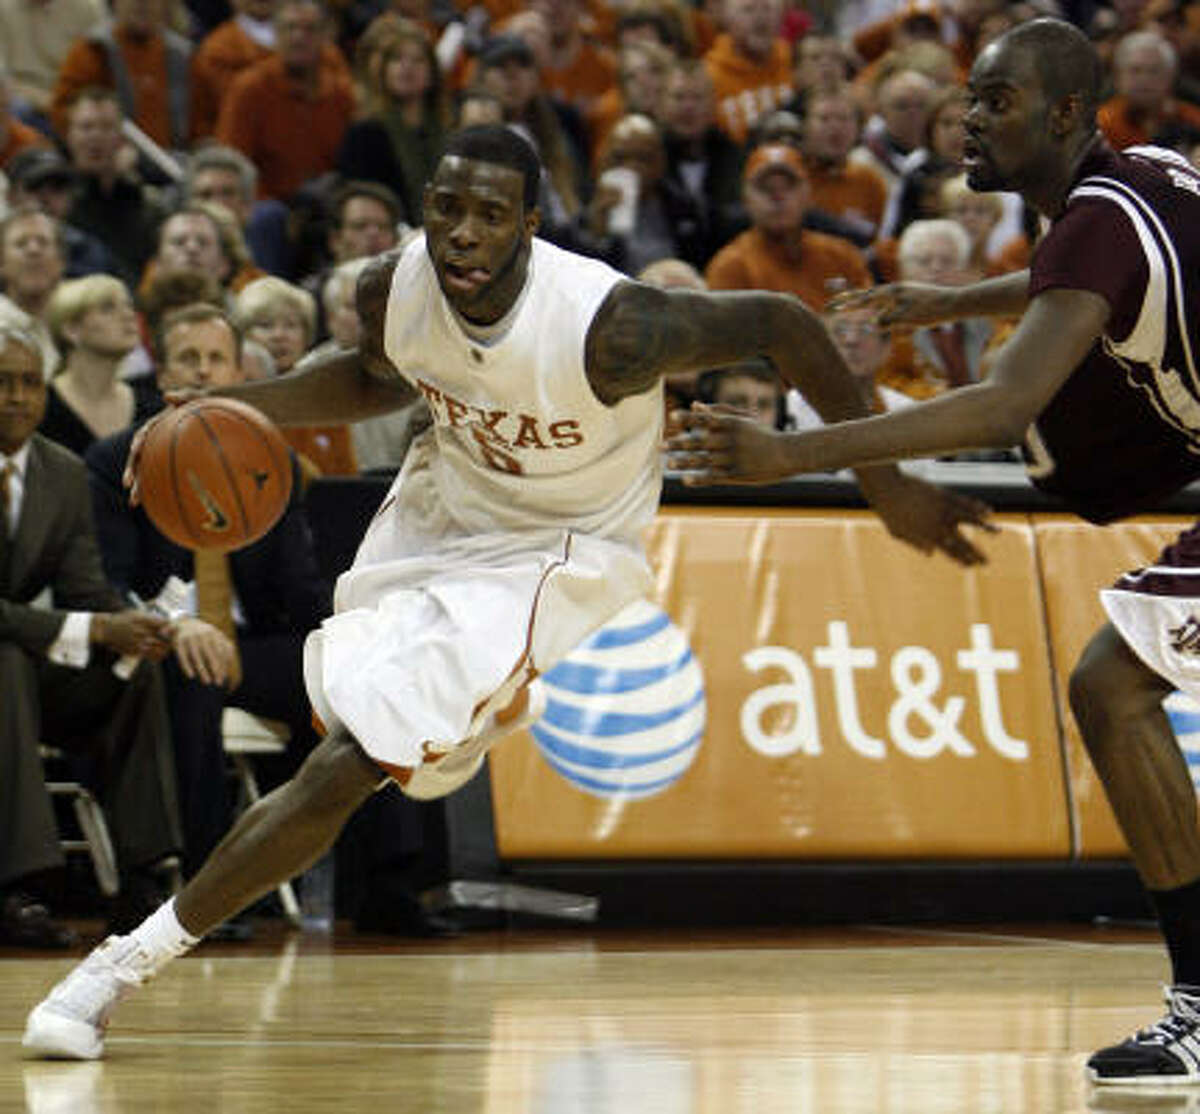 No. 14 Texas 67, Texas A&M 58 Damion James scored 28 points to lead Texas past Big 12 rival Texas A&M.